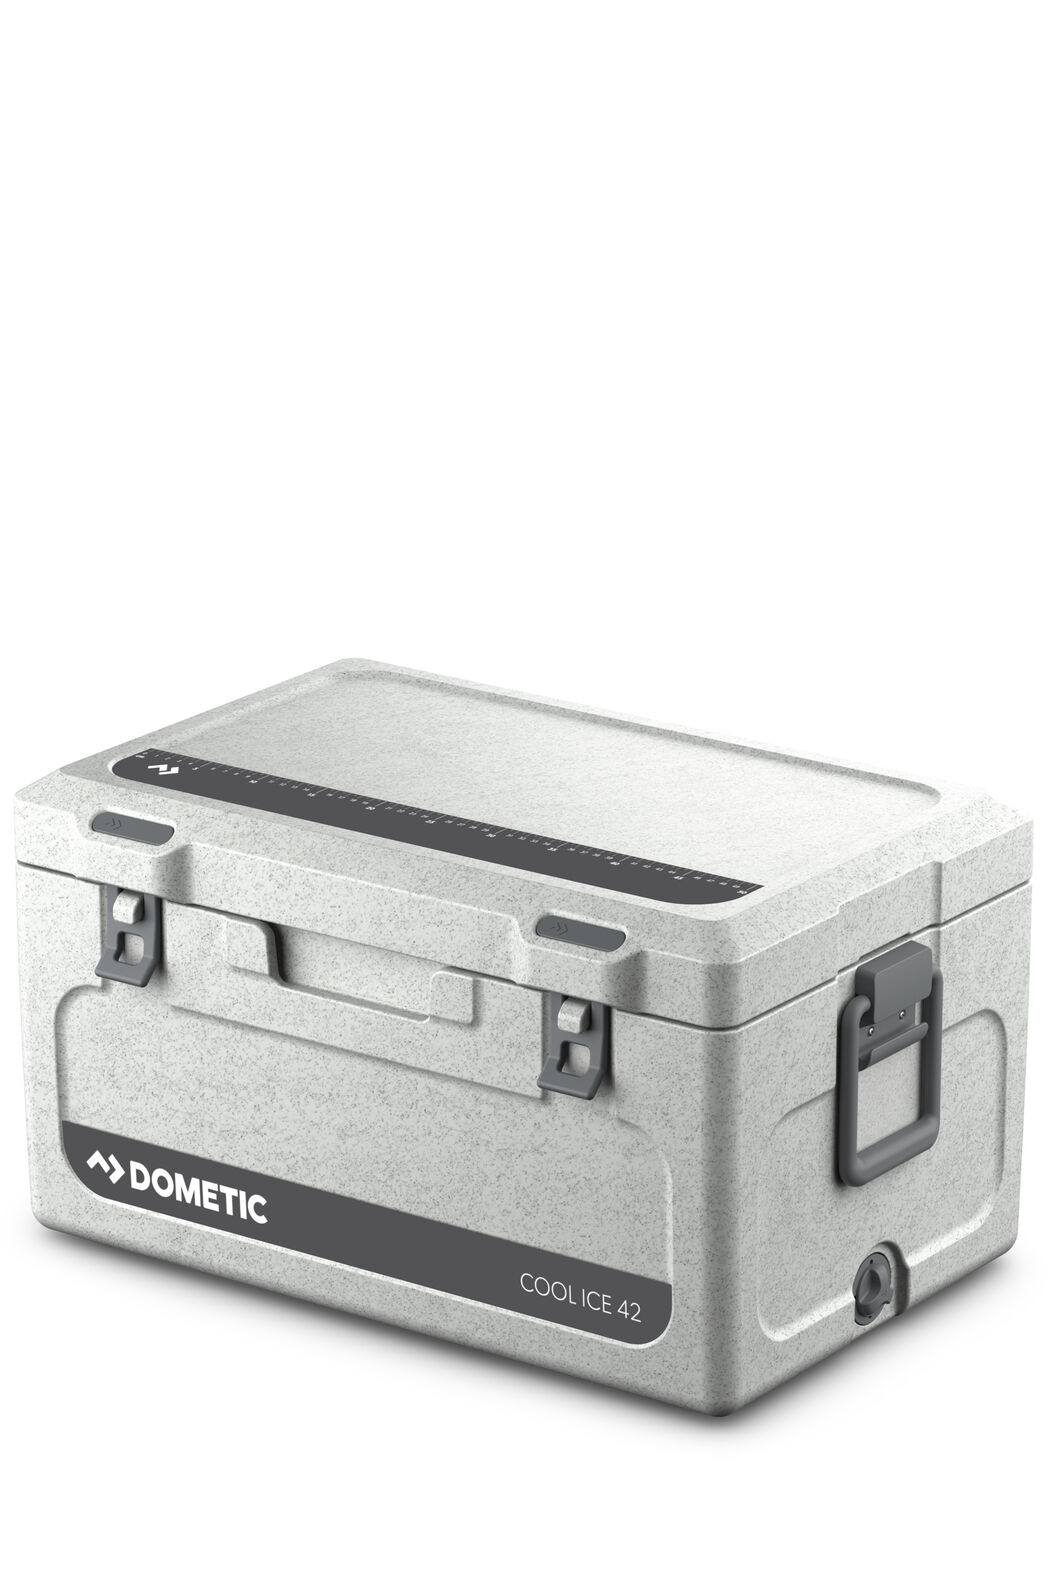 Dometic Cool Ice CI42 Icebox 43L, None, hi-res